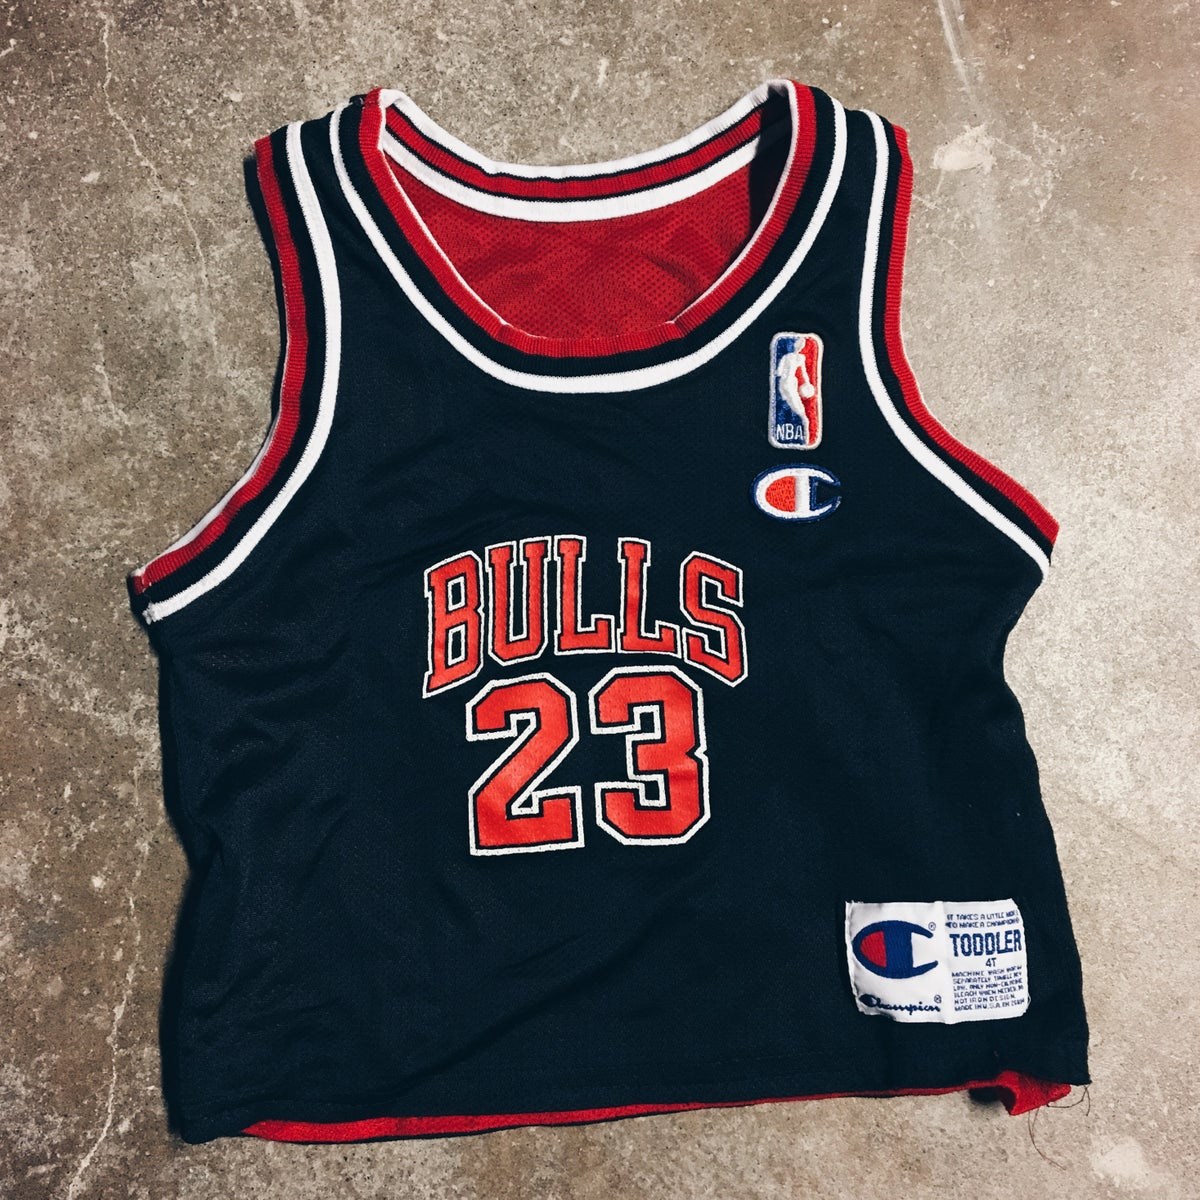 Image of Original 90s Champion MJ Reversible Toddler Jersey.